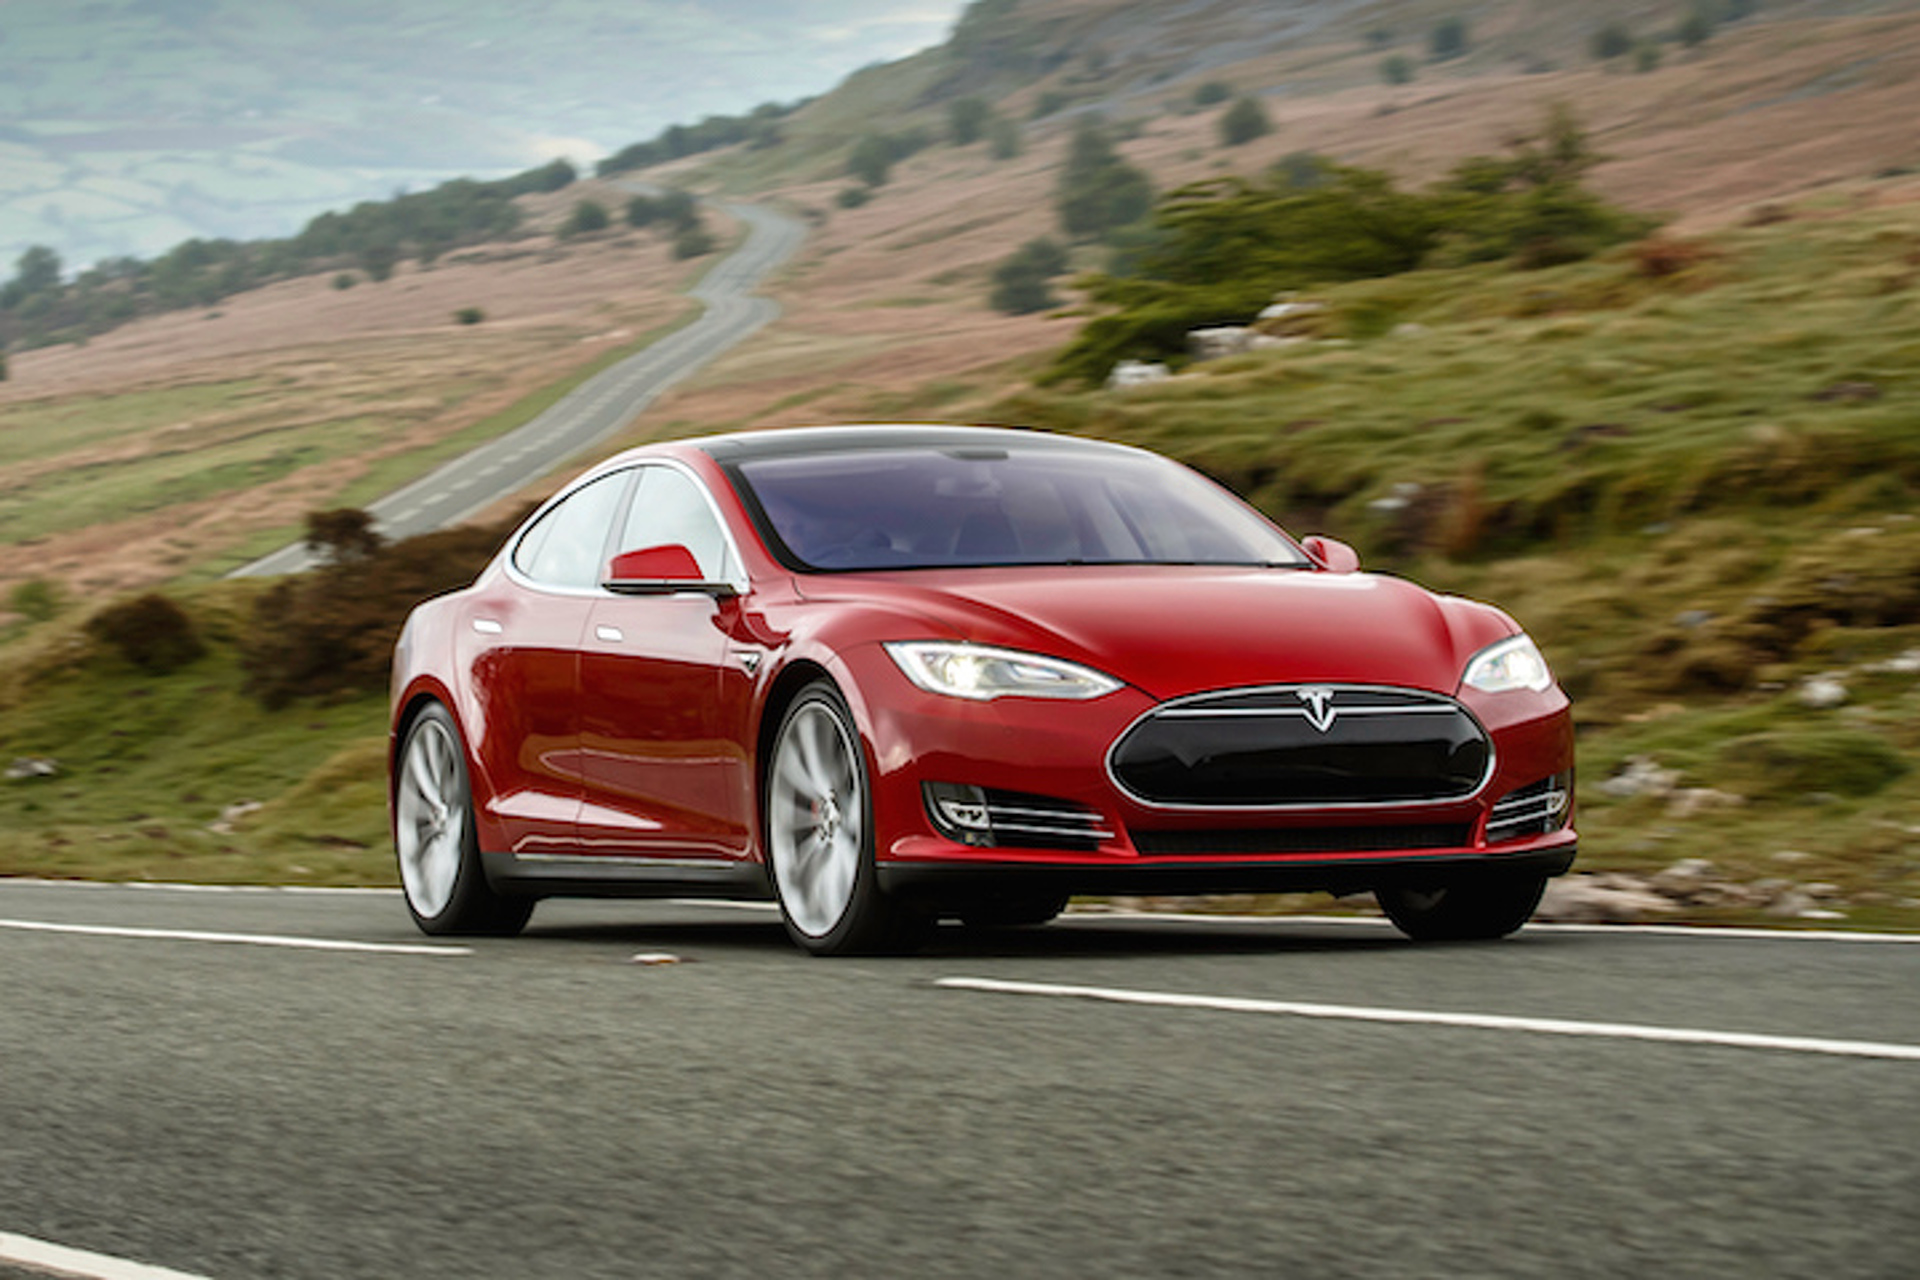 The Tesla Model S Has Been Hacked—But Tesla's Already Fighting Back